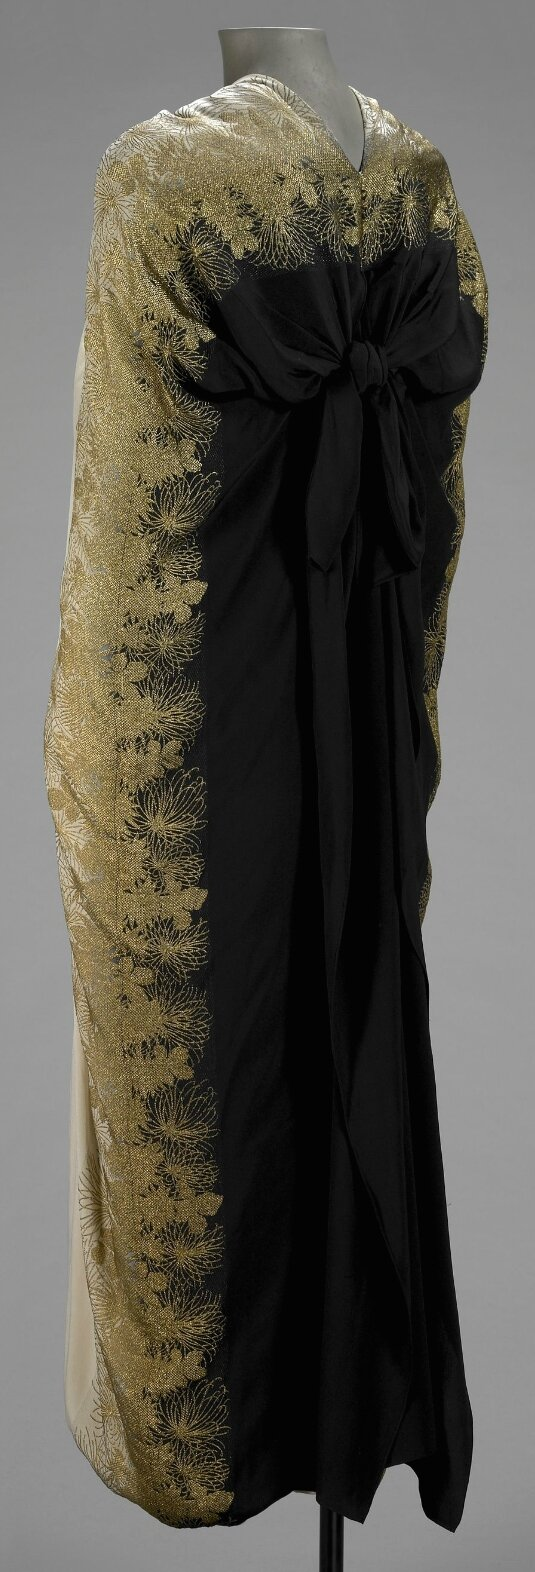 Evening Cape, Gabrielle 'Coco' Chanel, House of Chanel, 1927